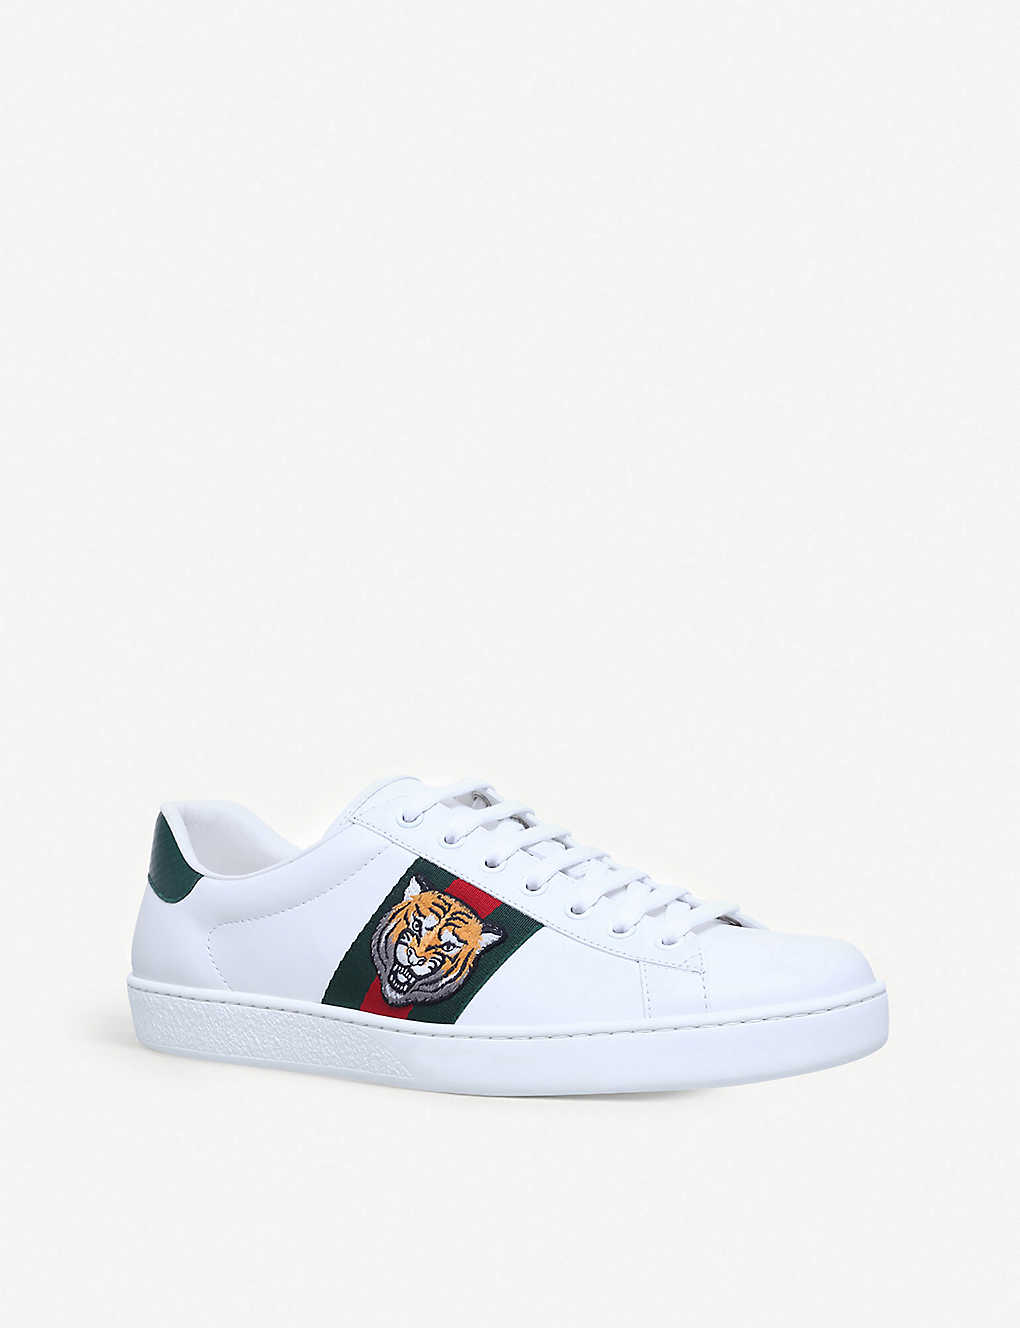 908b5bc95b7 ... New Ace tiger-embroidered leather trainers - White ...